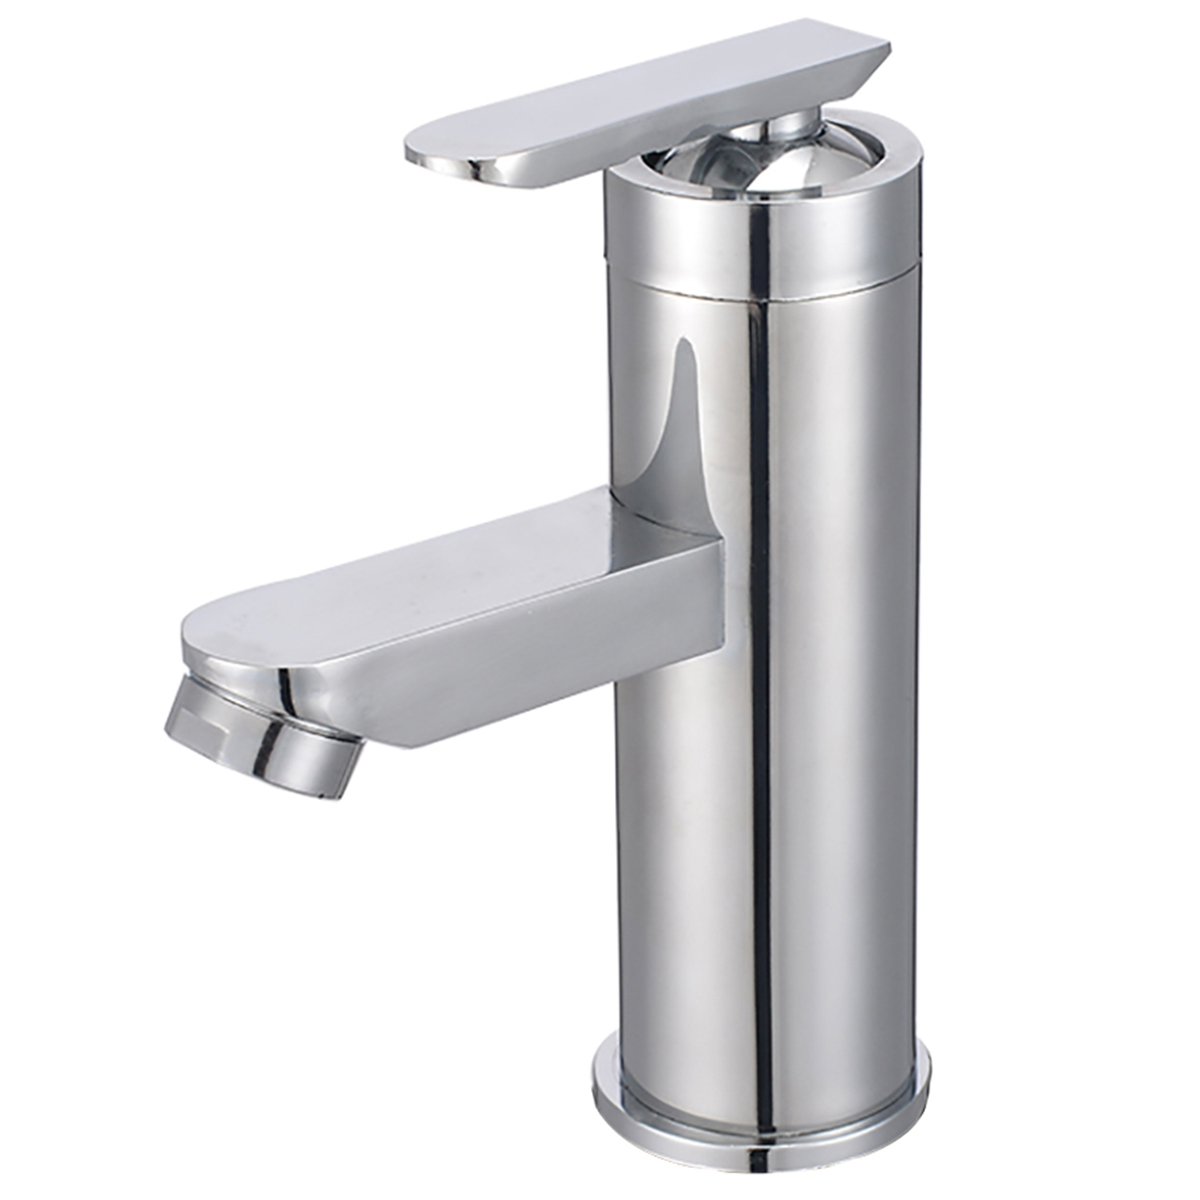 Chrome Single Handle Sink Cold Hot Mixer Tap Waterfall Household Kitchen Bathroom Basin Faucets